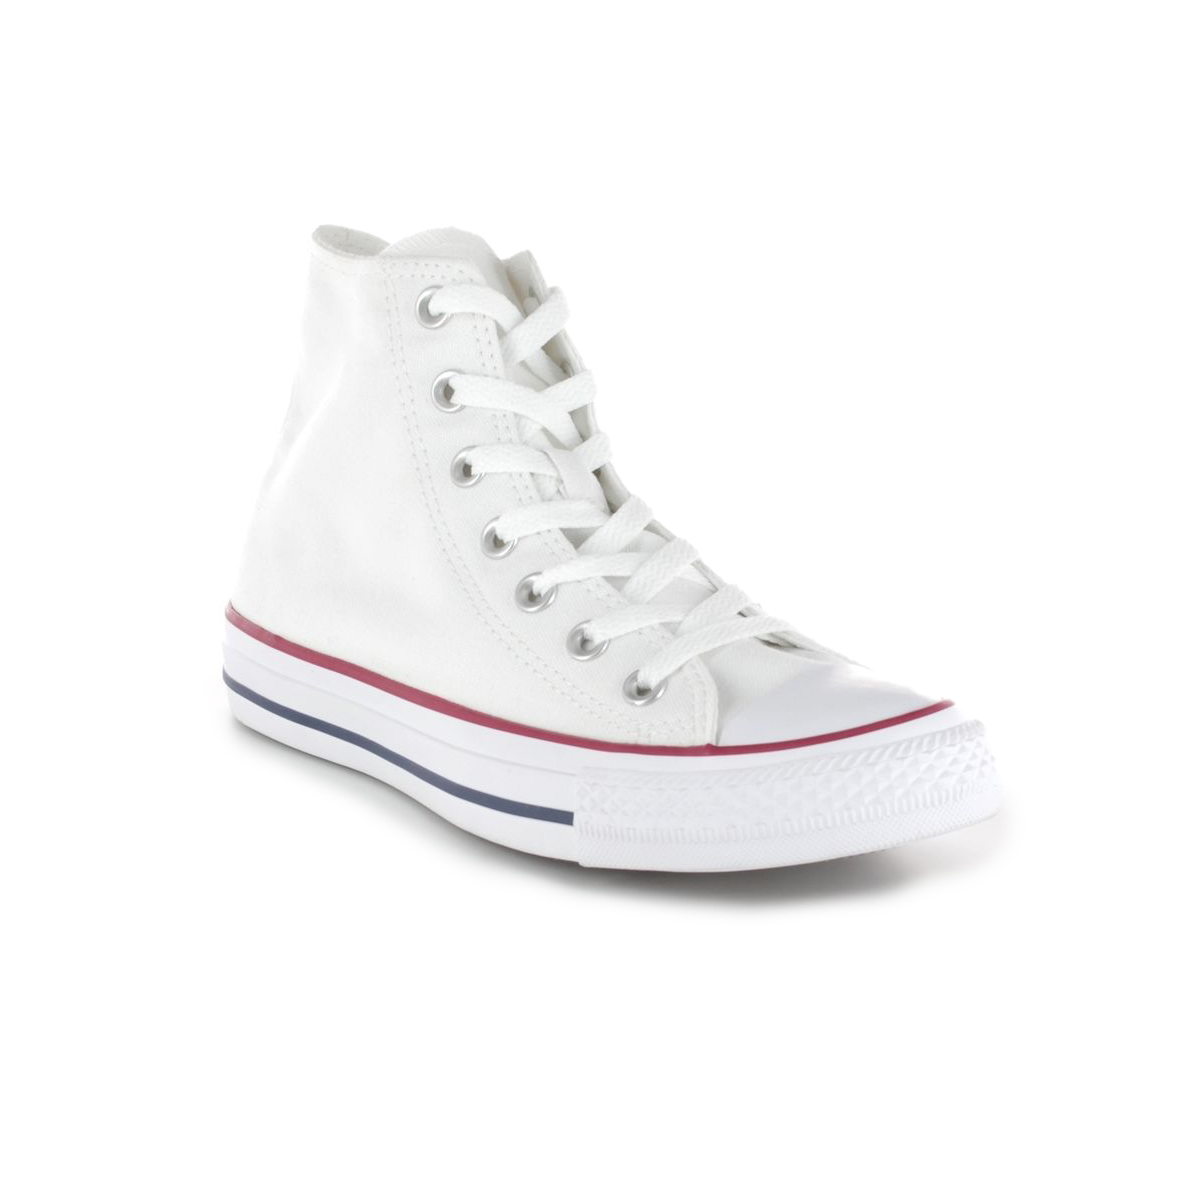 fbe286e67438 Converse Trainers - White - M7650C All Star HI Top Optical White